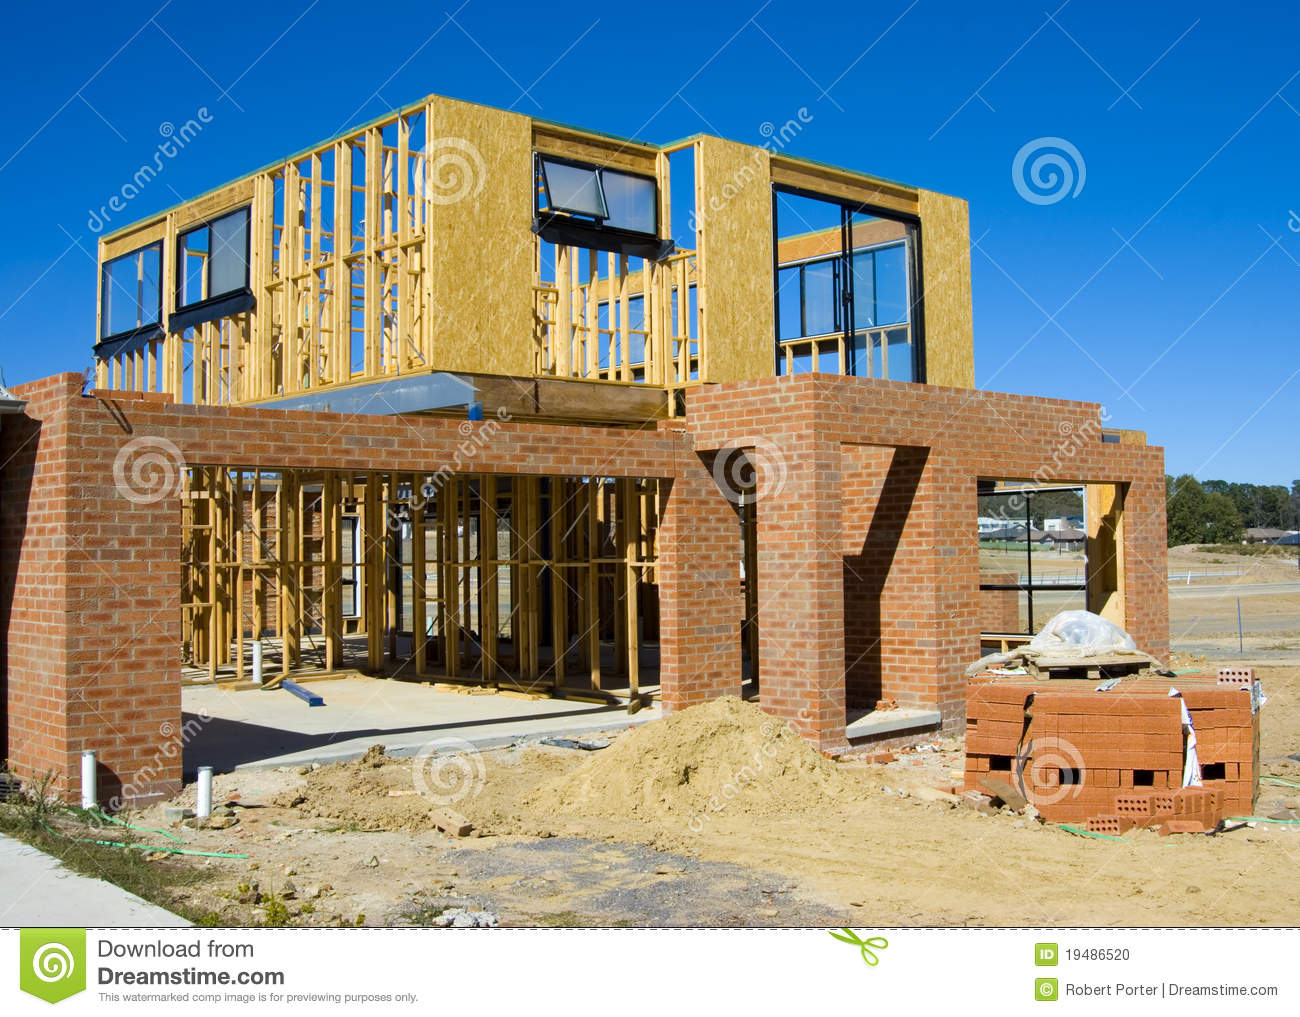 Stock Photo Modern House Under Construction Image19486520 on seaside house plans